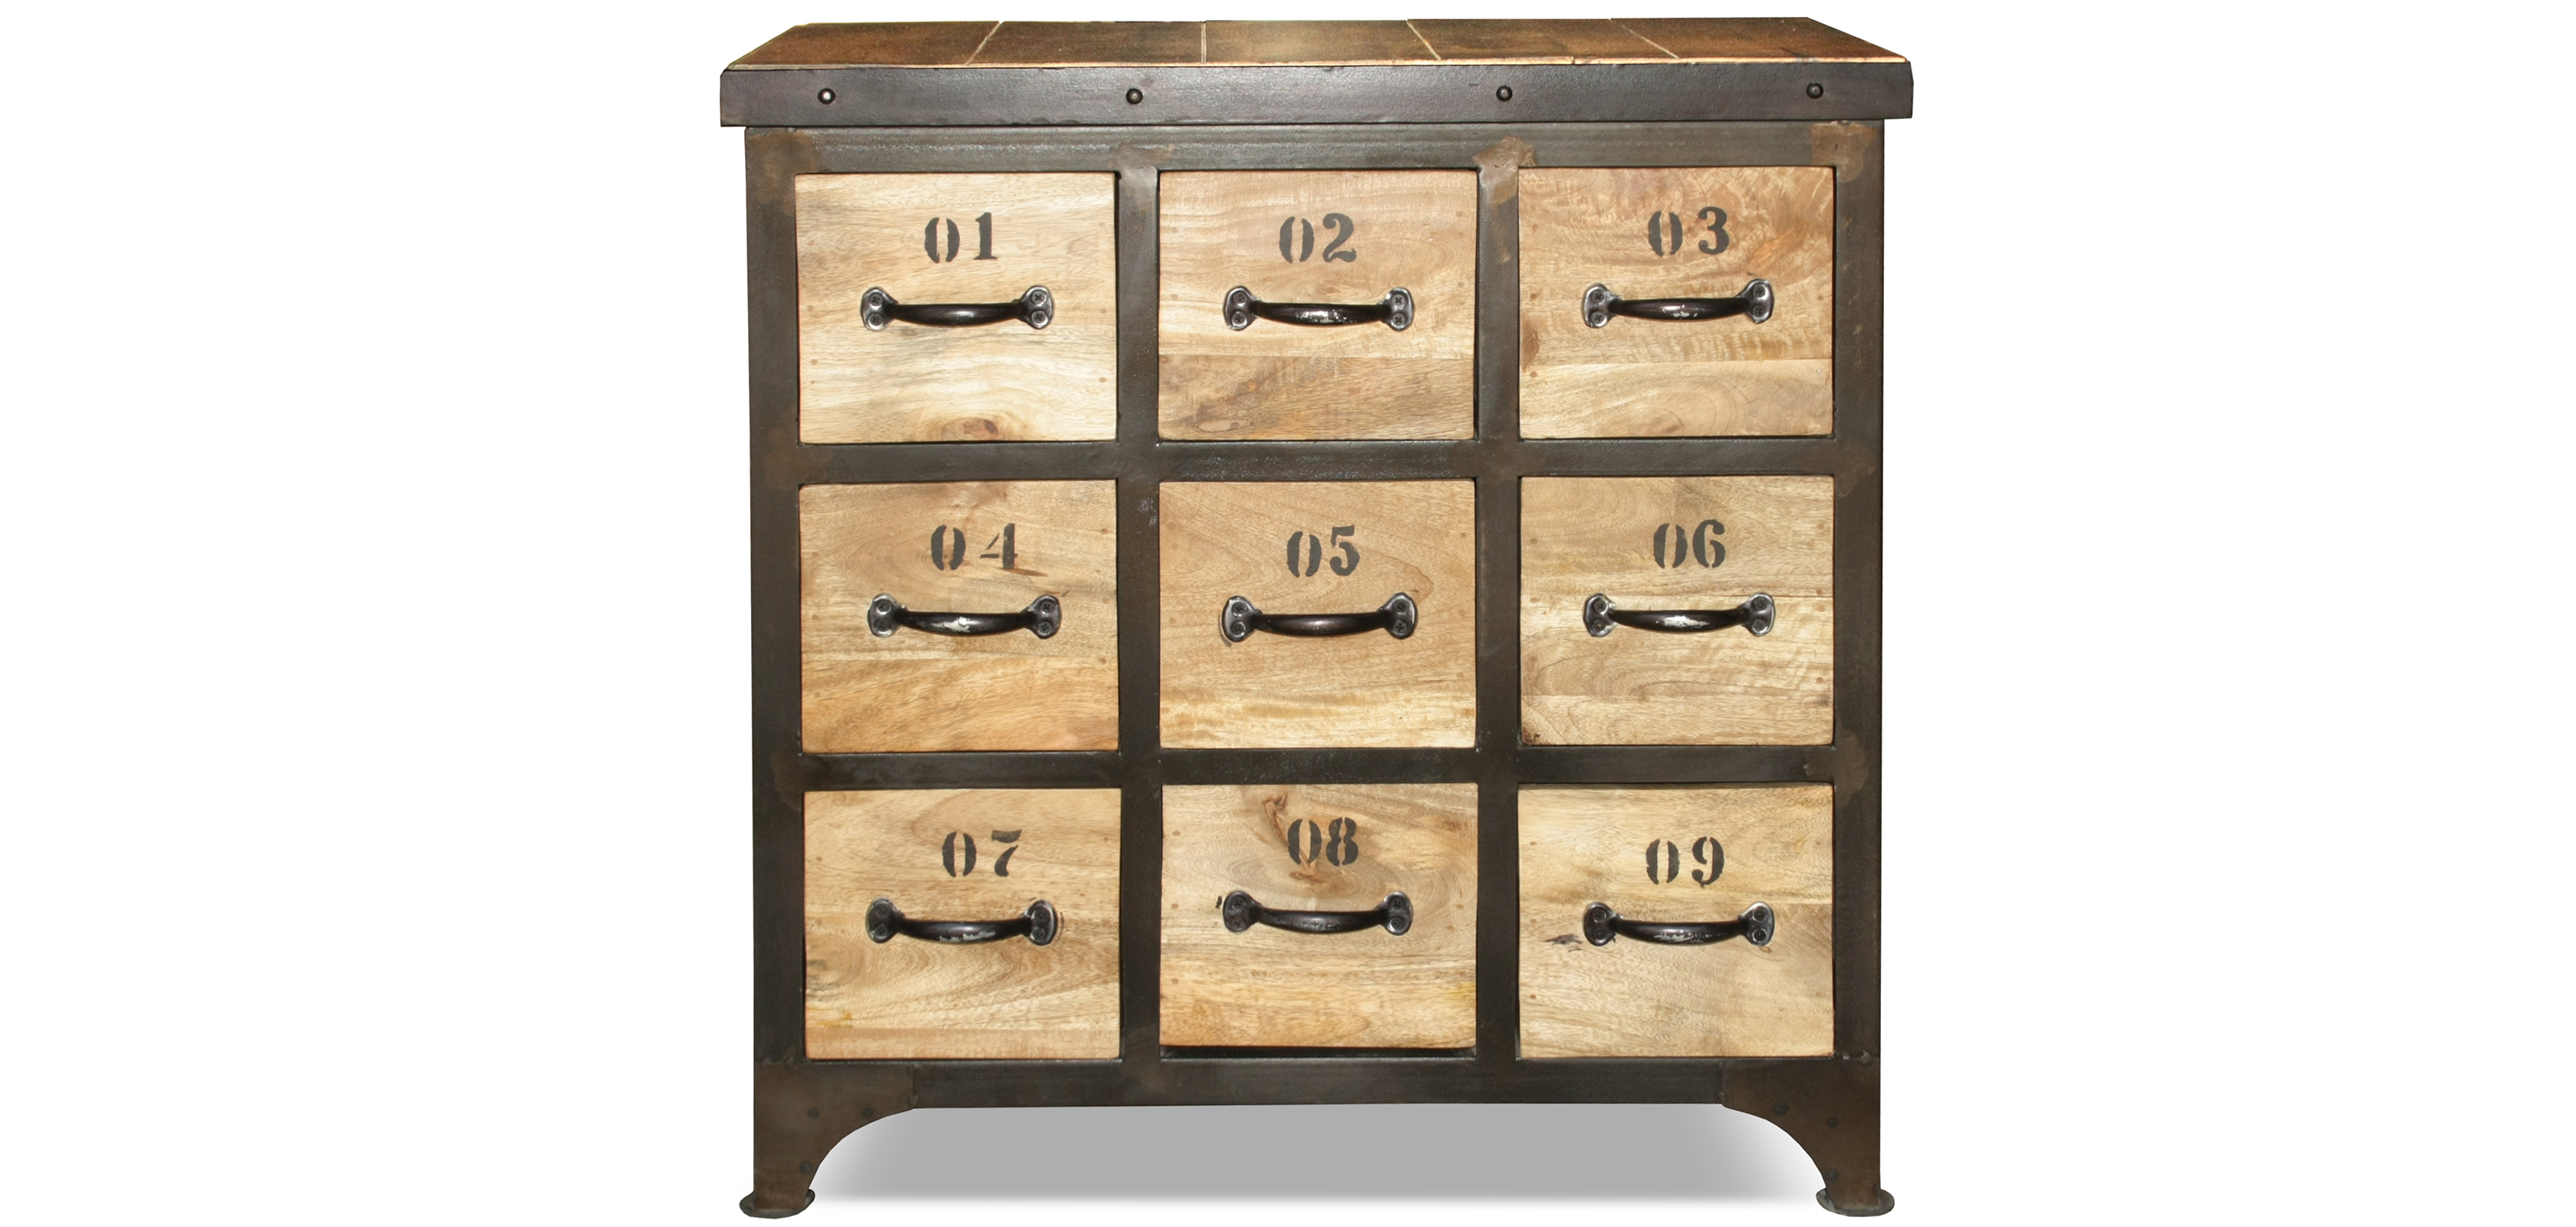 vintage industrial chest of drawers wood 9 drawers chest of drawers. Black Bedroom Furniture Sets. Home Design Ideas